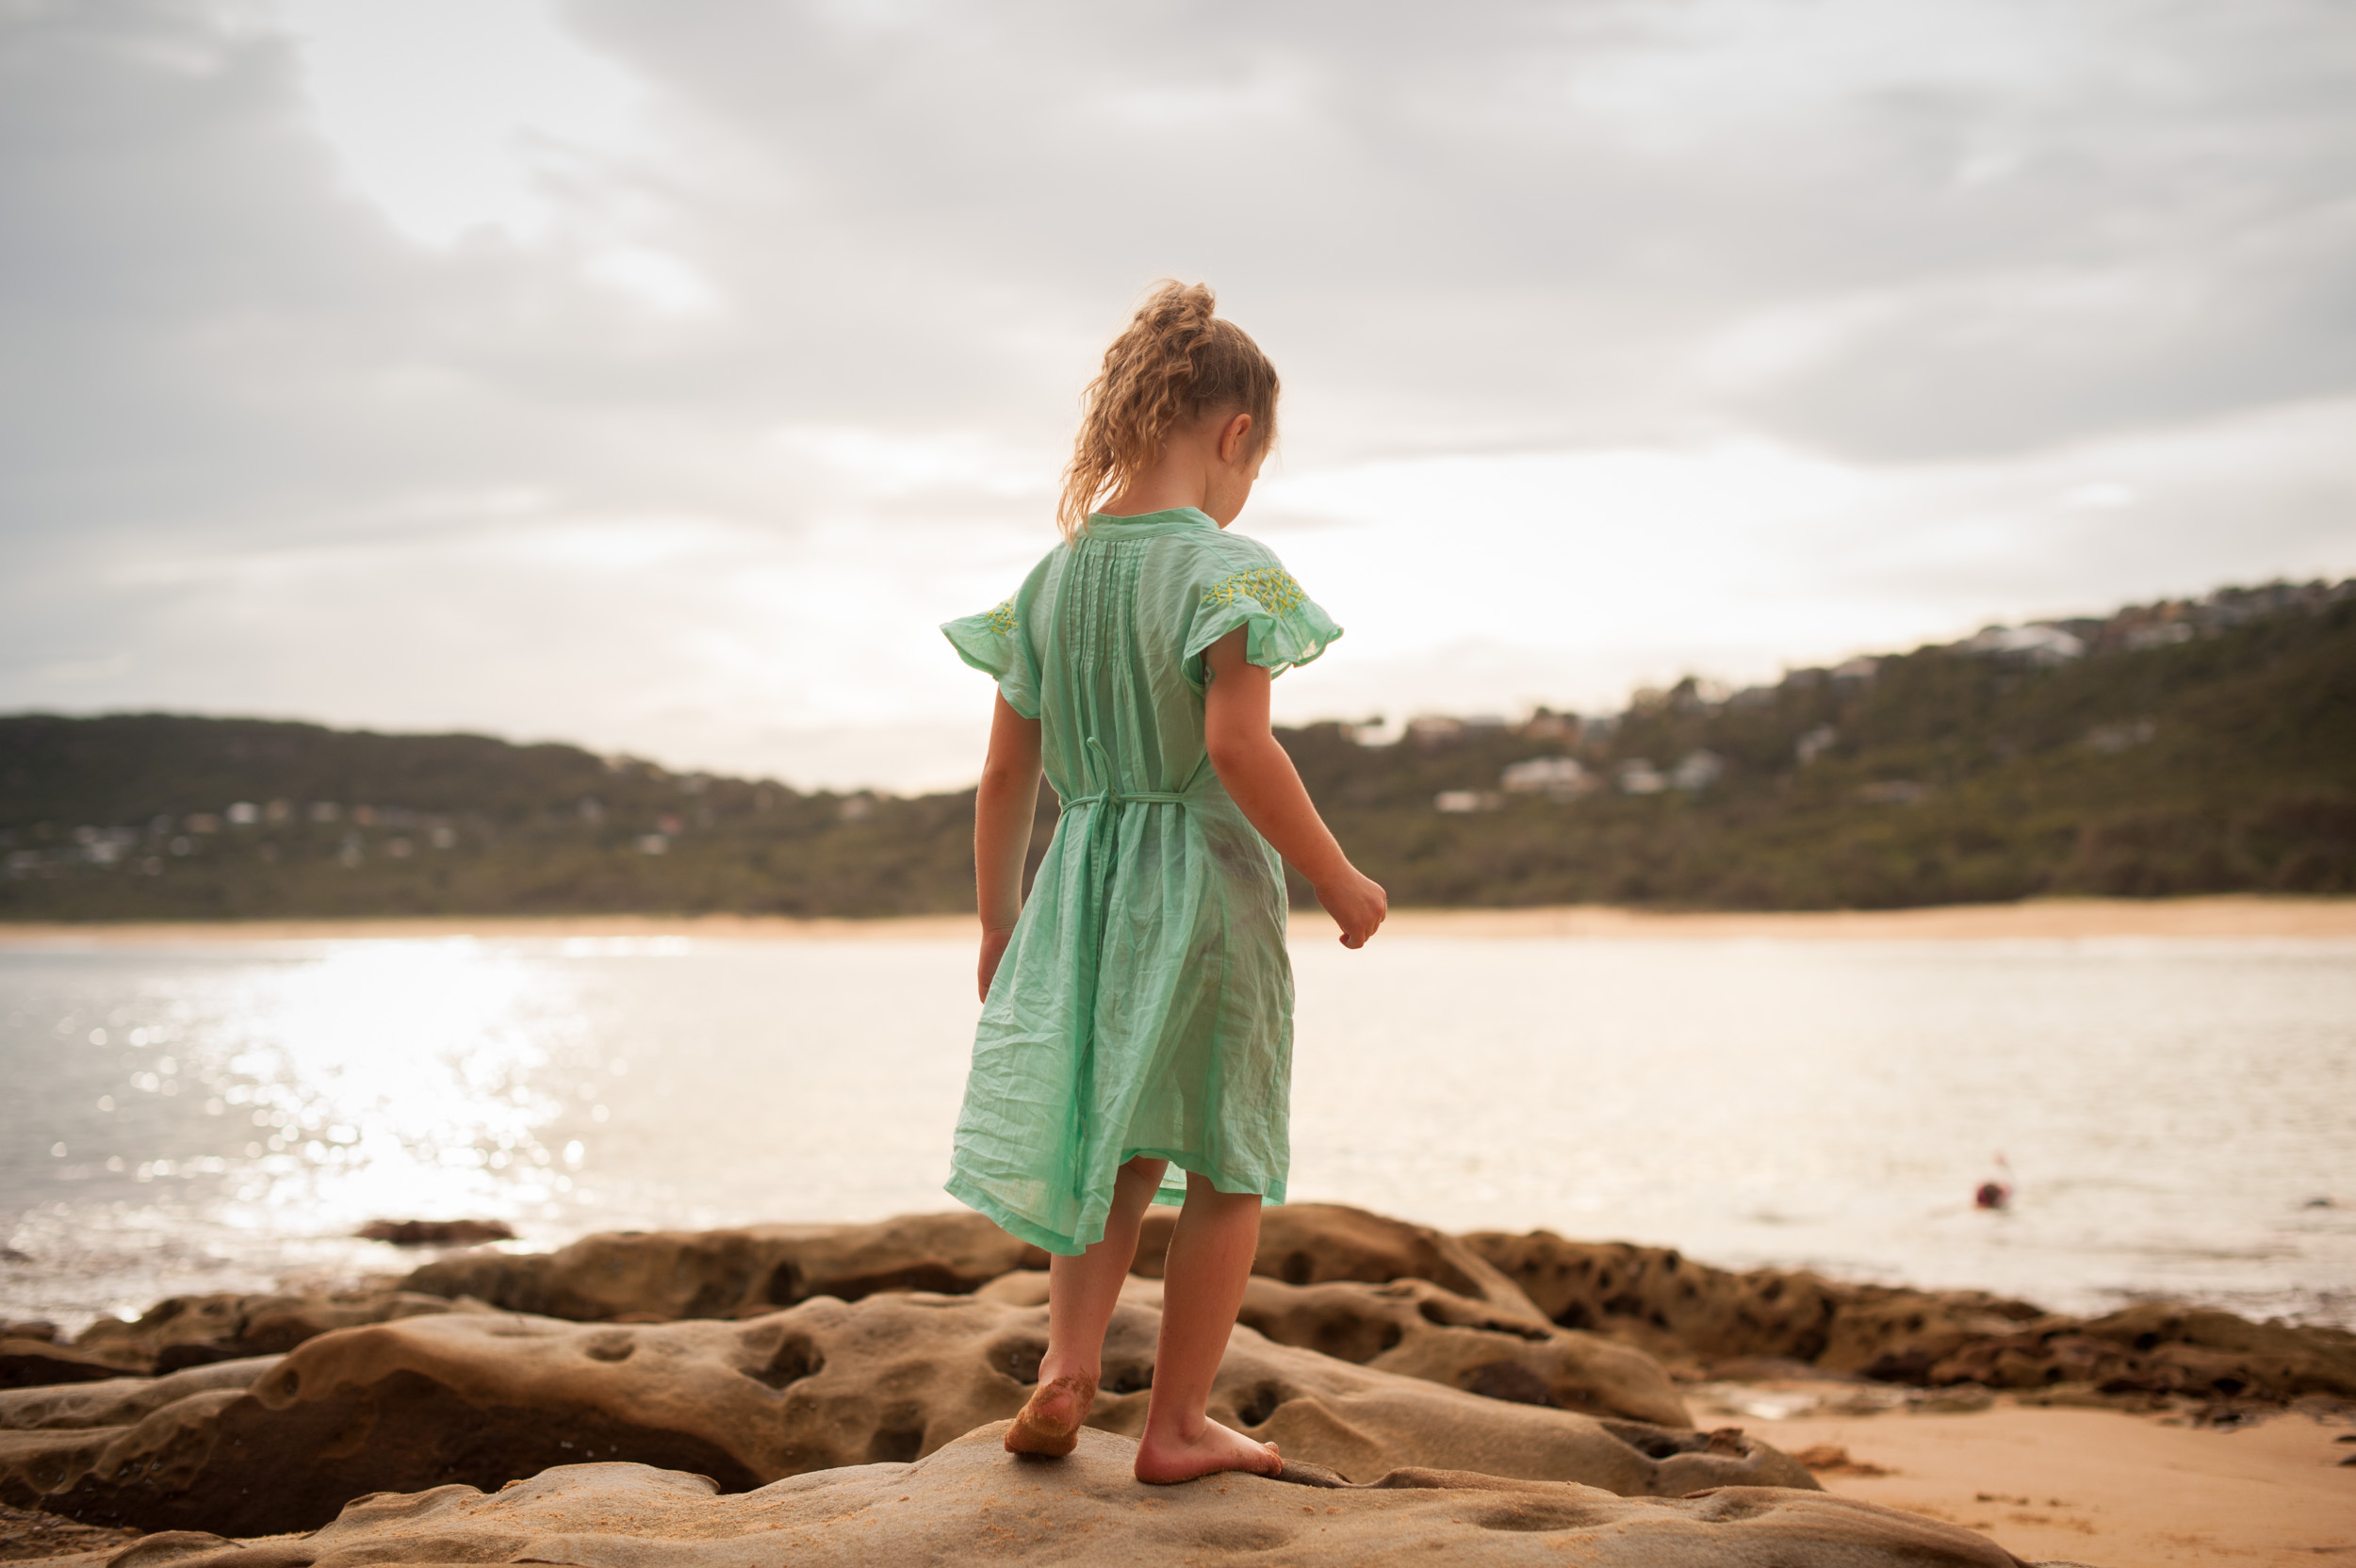 CHILDRENS PHOTOGRAPHER CENTRAL COAST